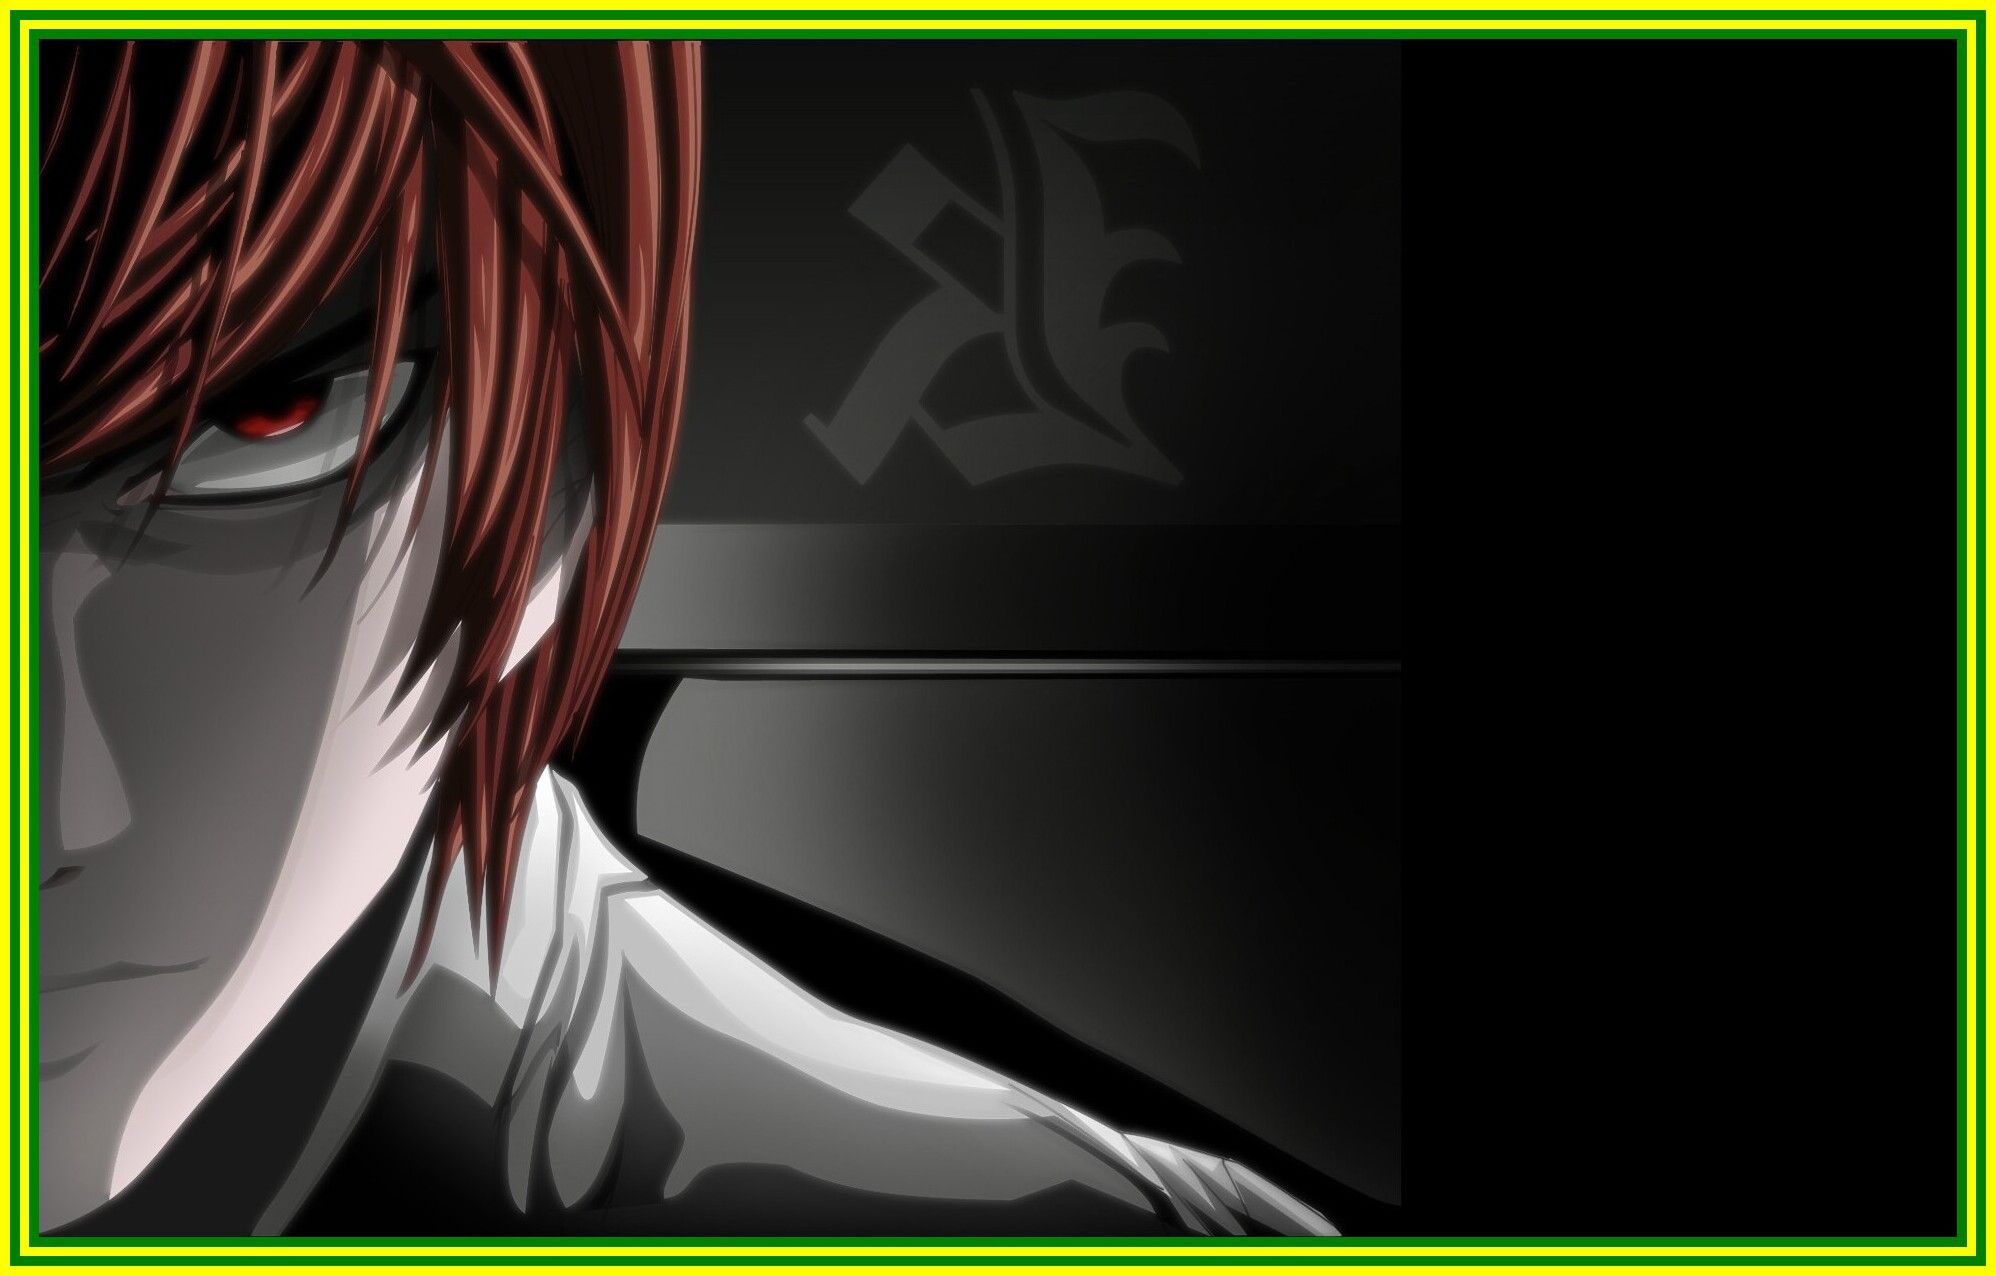 73 Reference Of Light Yagami Kira Wallpaper In 2020 Death Note Light Light Yagami Wallpaper